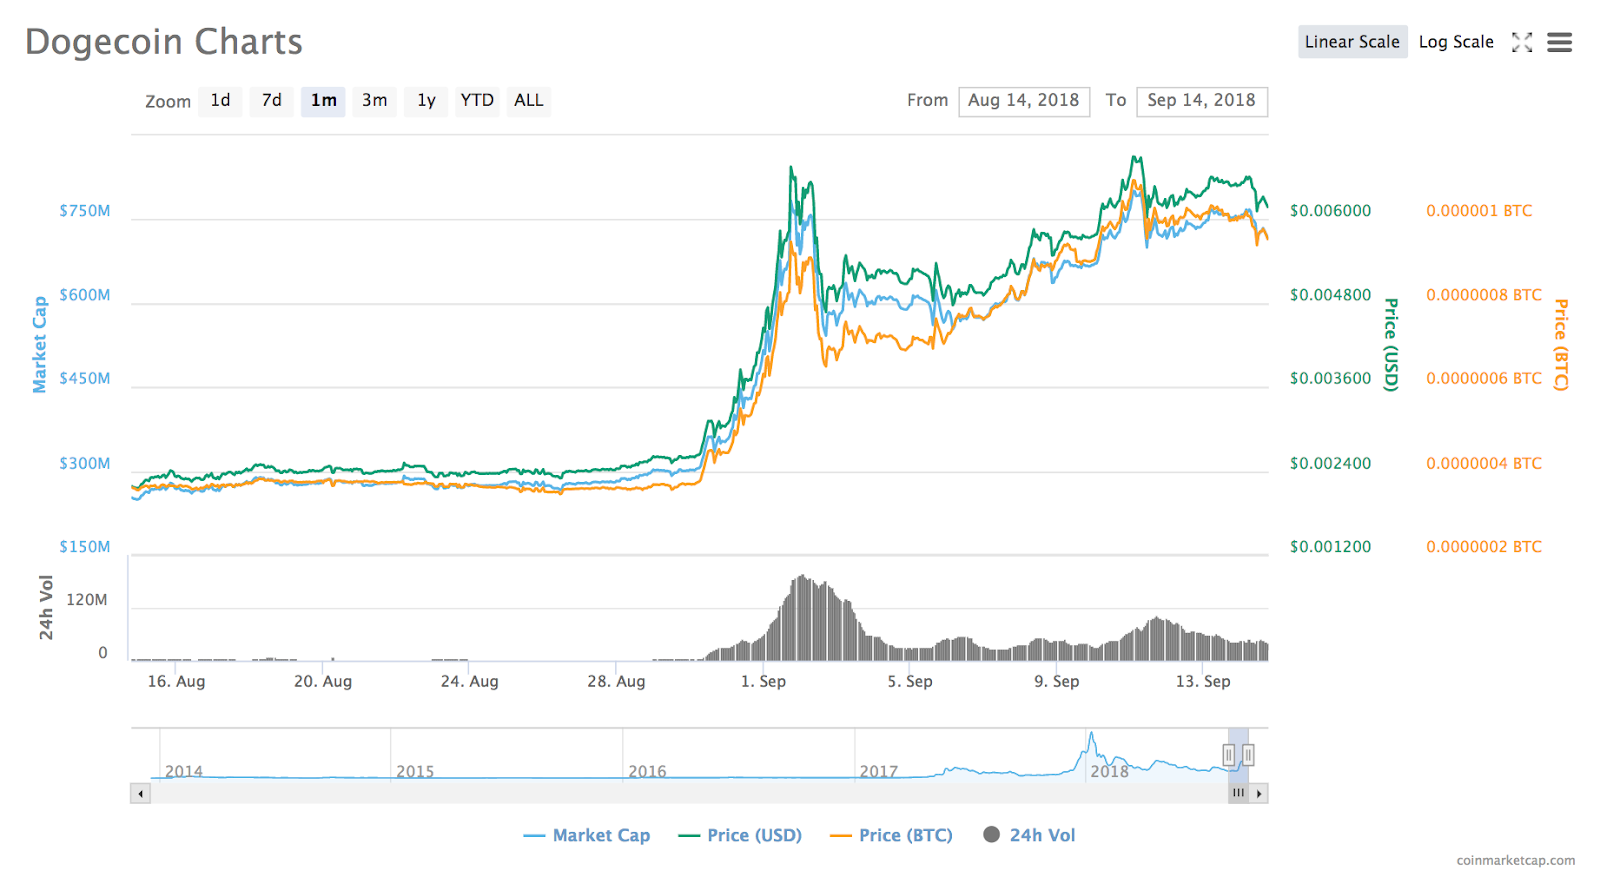 Dogecoin 1-month price chart